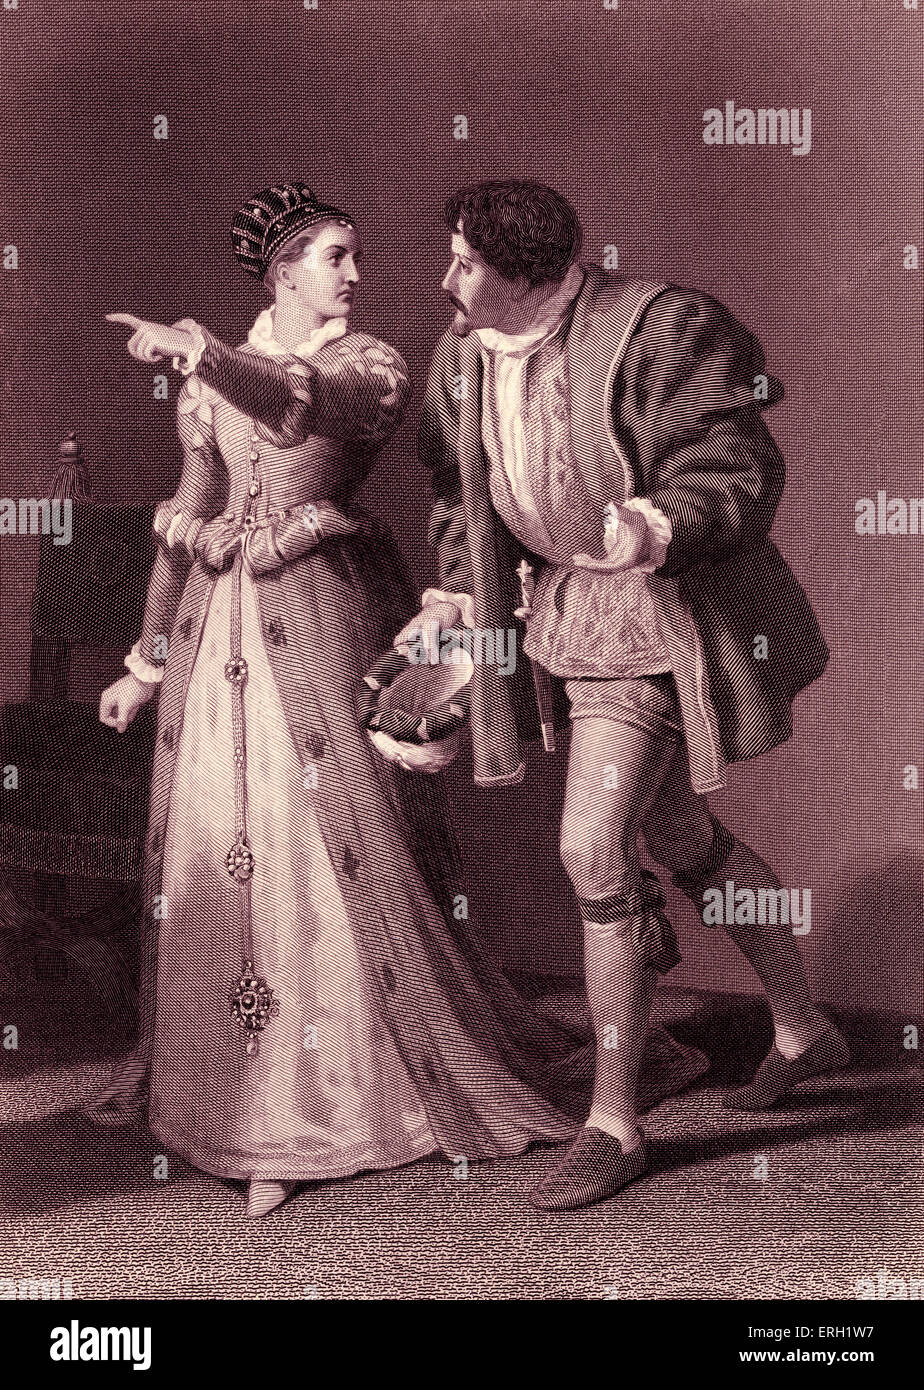 Much Ado About Nothing (Act IV Scene 1), play by William Shakespeare. Benedick and Beatrice. 'Beatrice: Talk with Stock Photo